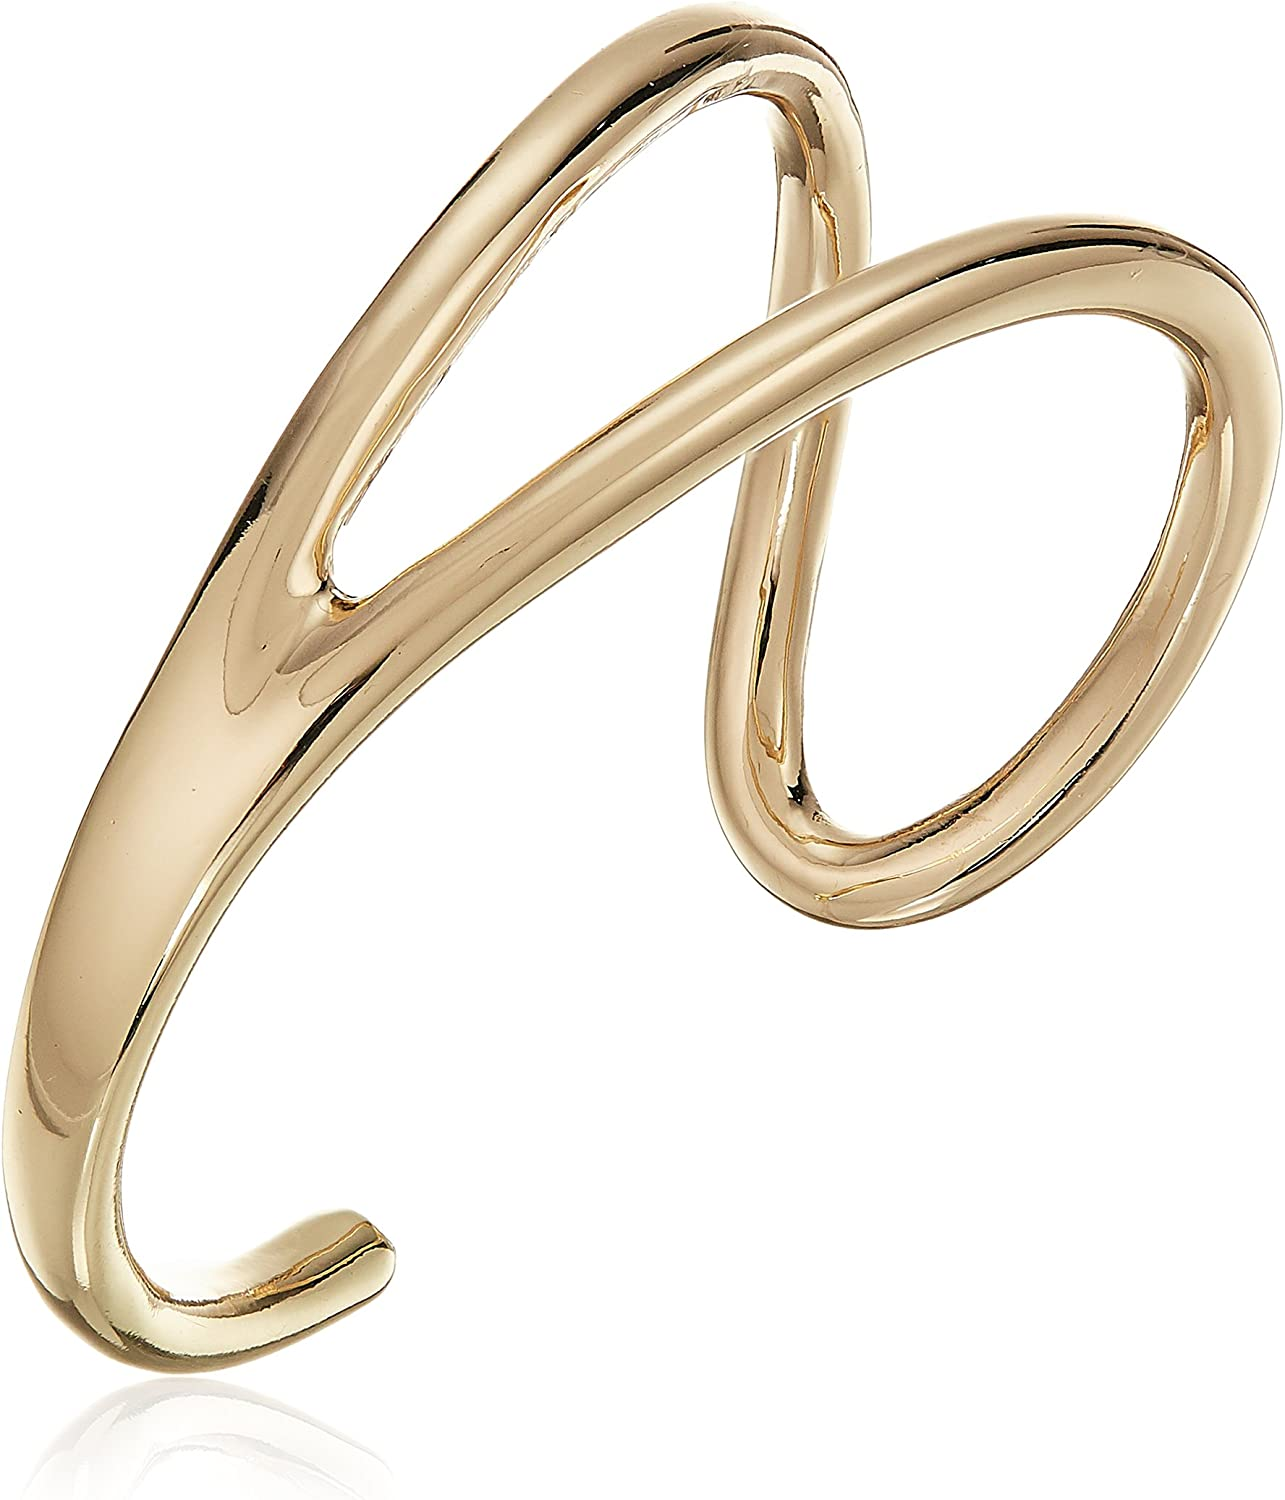 French Connection Women's Open Cuff Bracelet, Gold, One Size